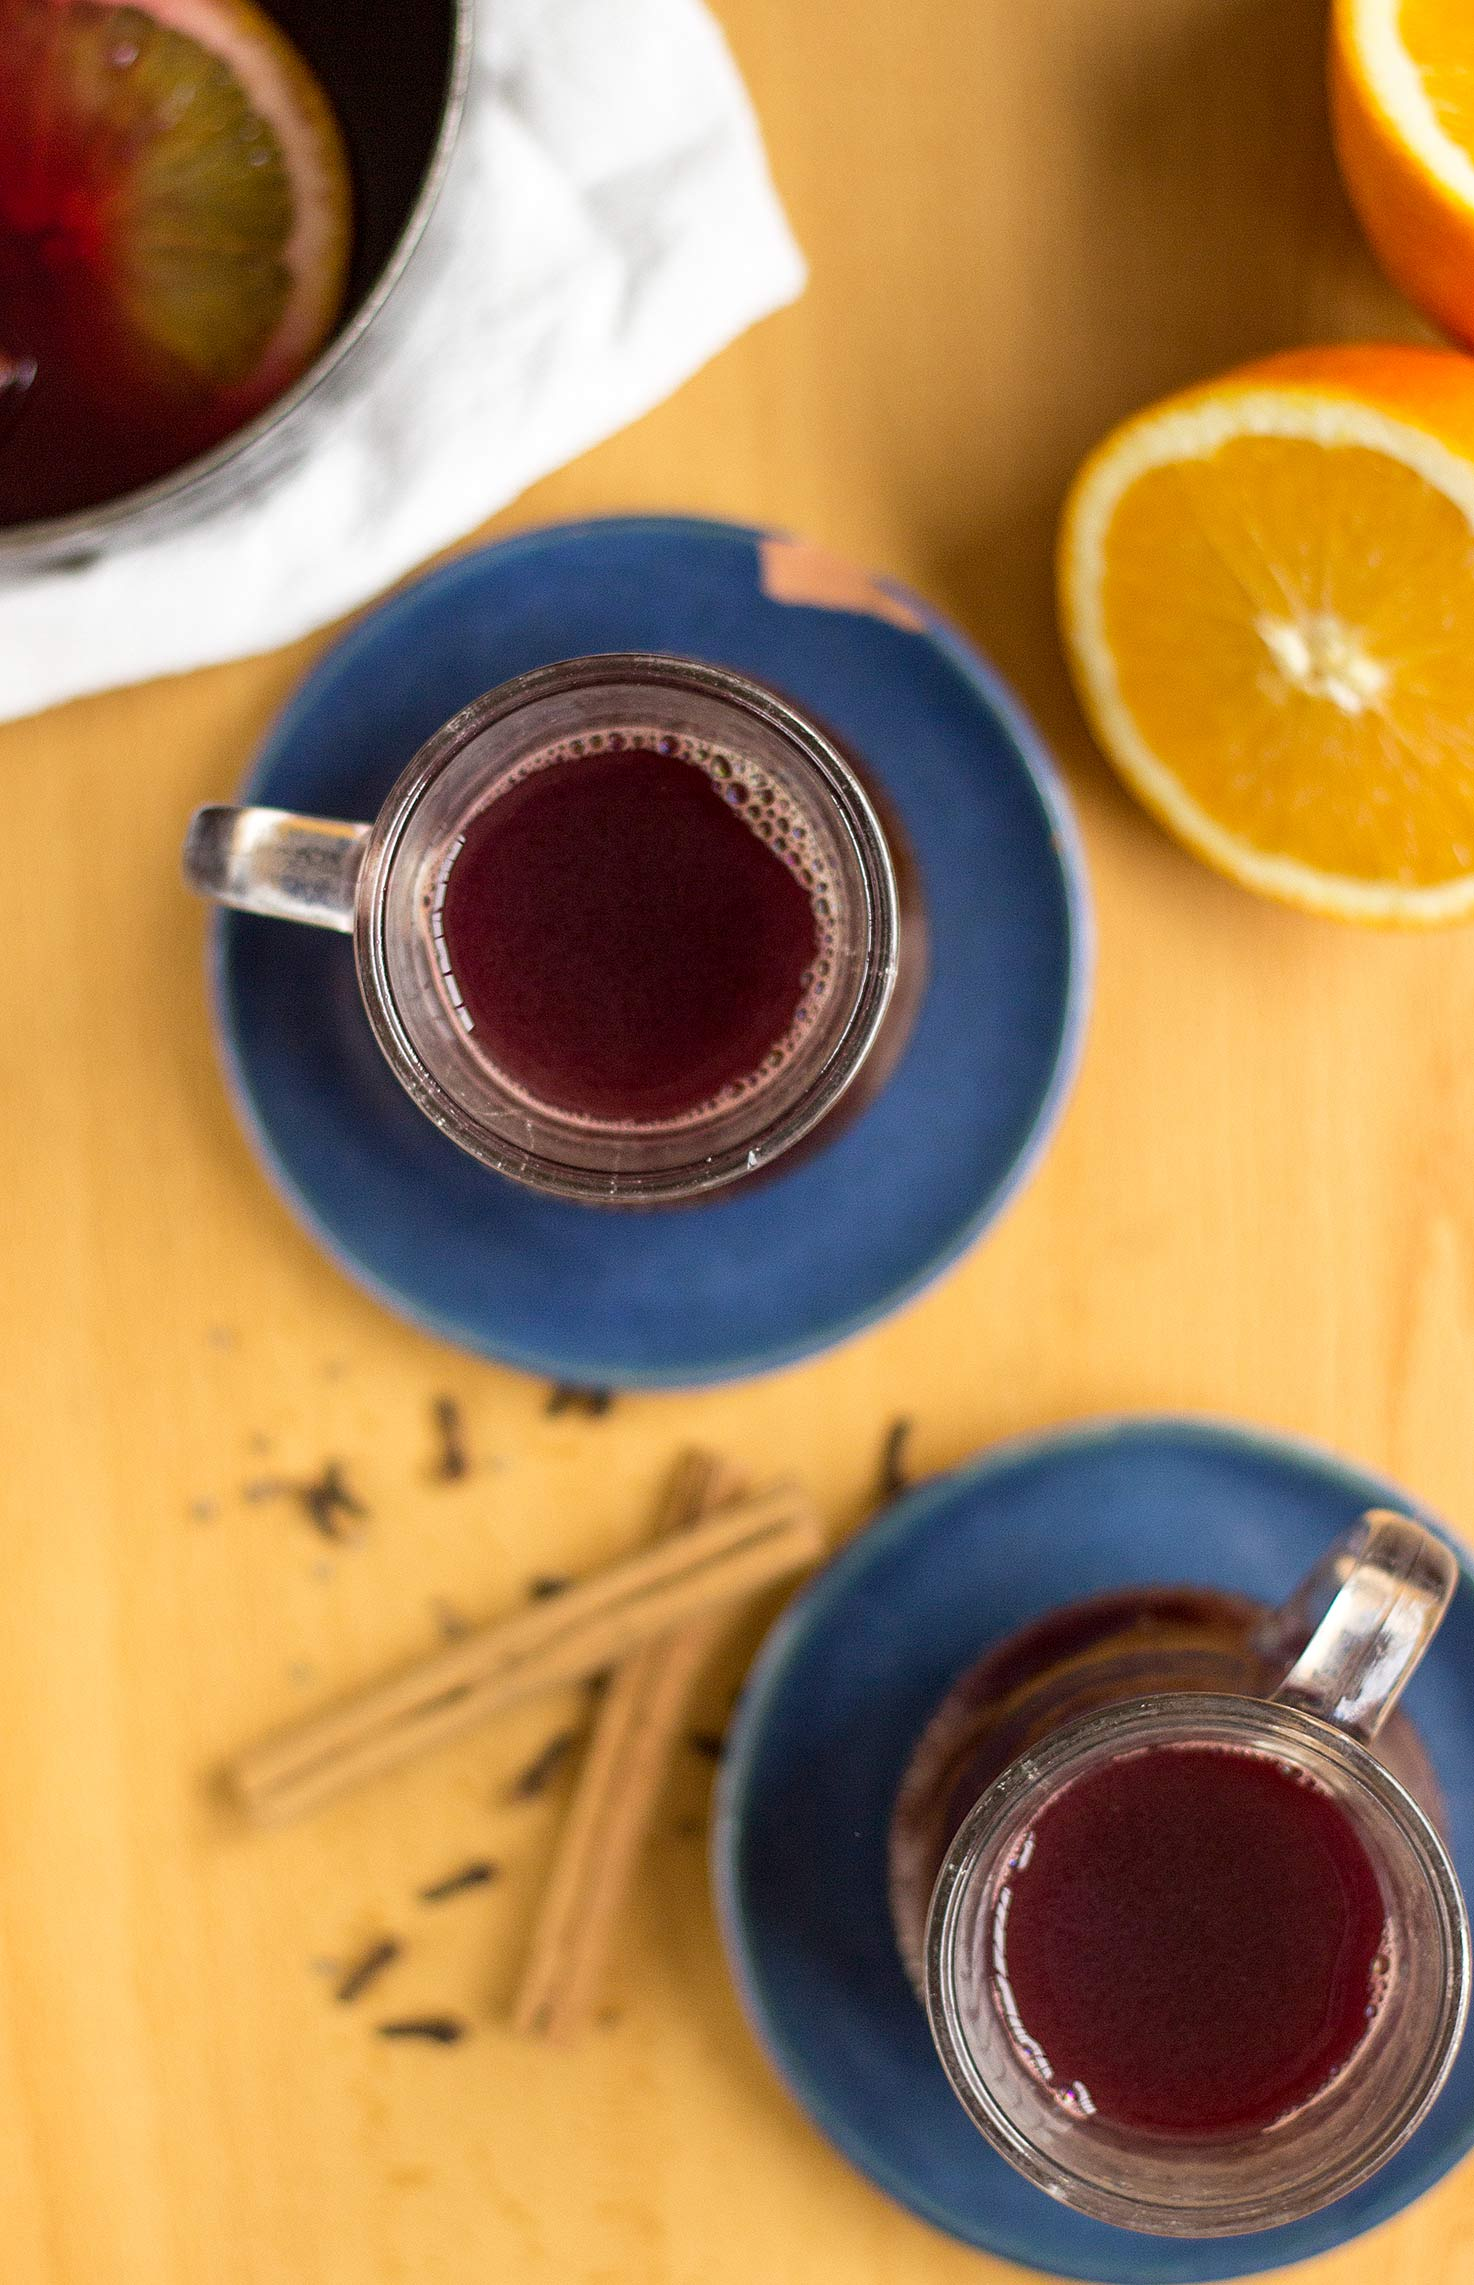 Spiced wine served in 2 glasses on blue plates with orange and cinnamon sticks on the table | Hurry The Food Up